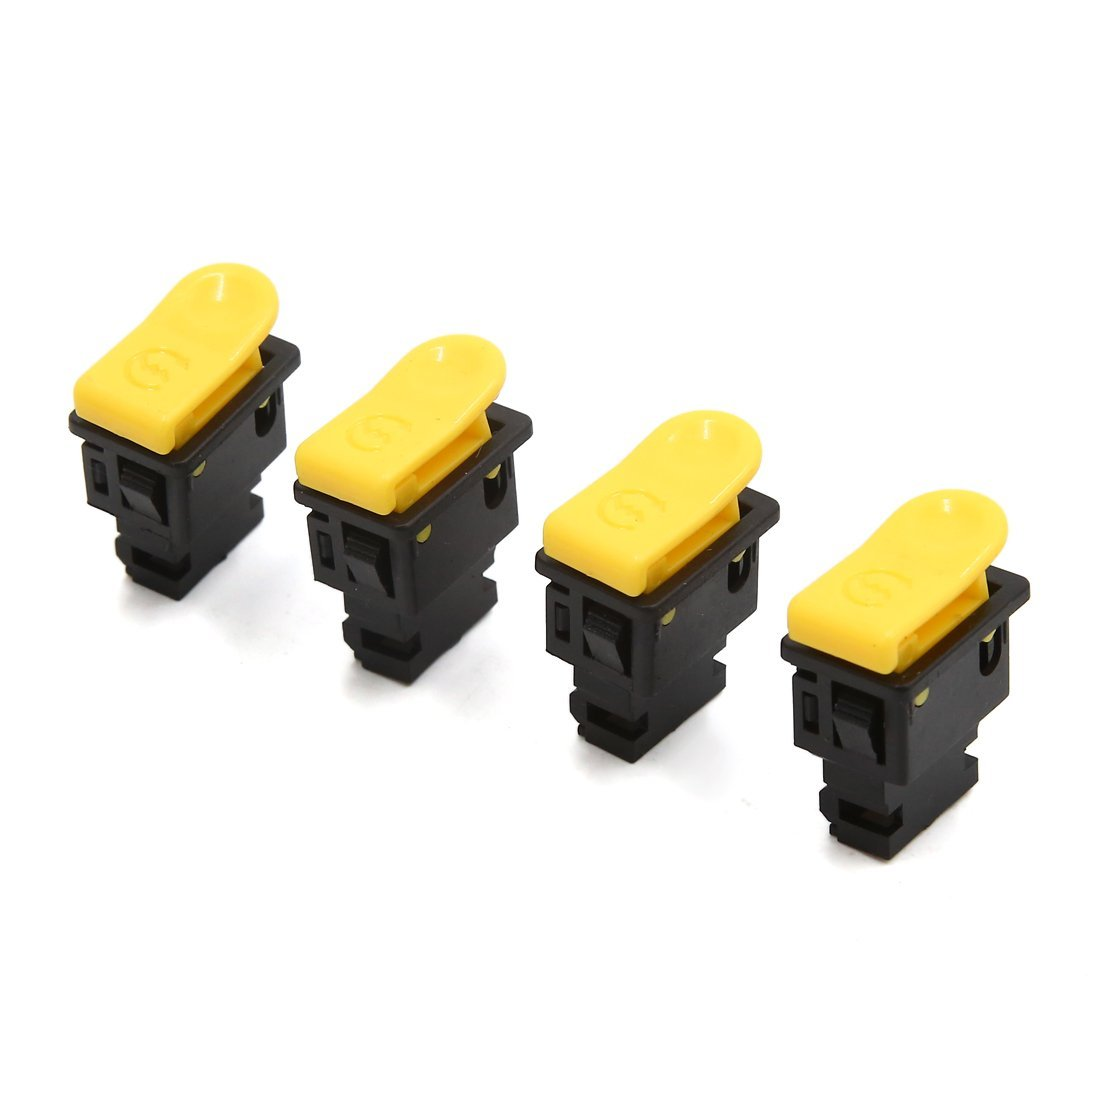 uxcell 4pcs 2 Terminals Motorcycle Electric Power Starting Control Switch Black Yellow